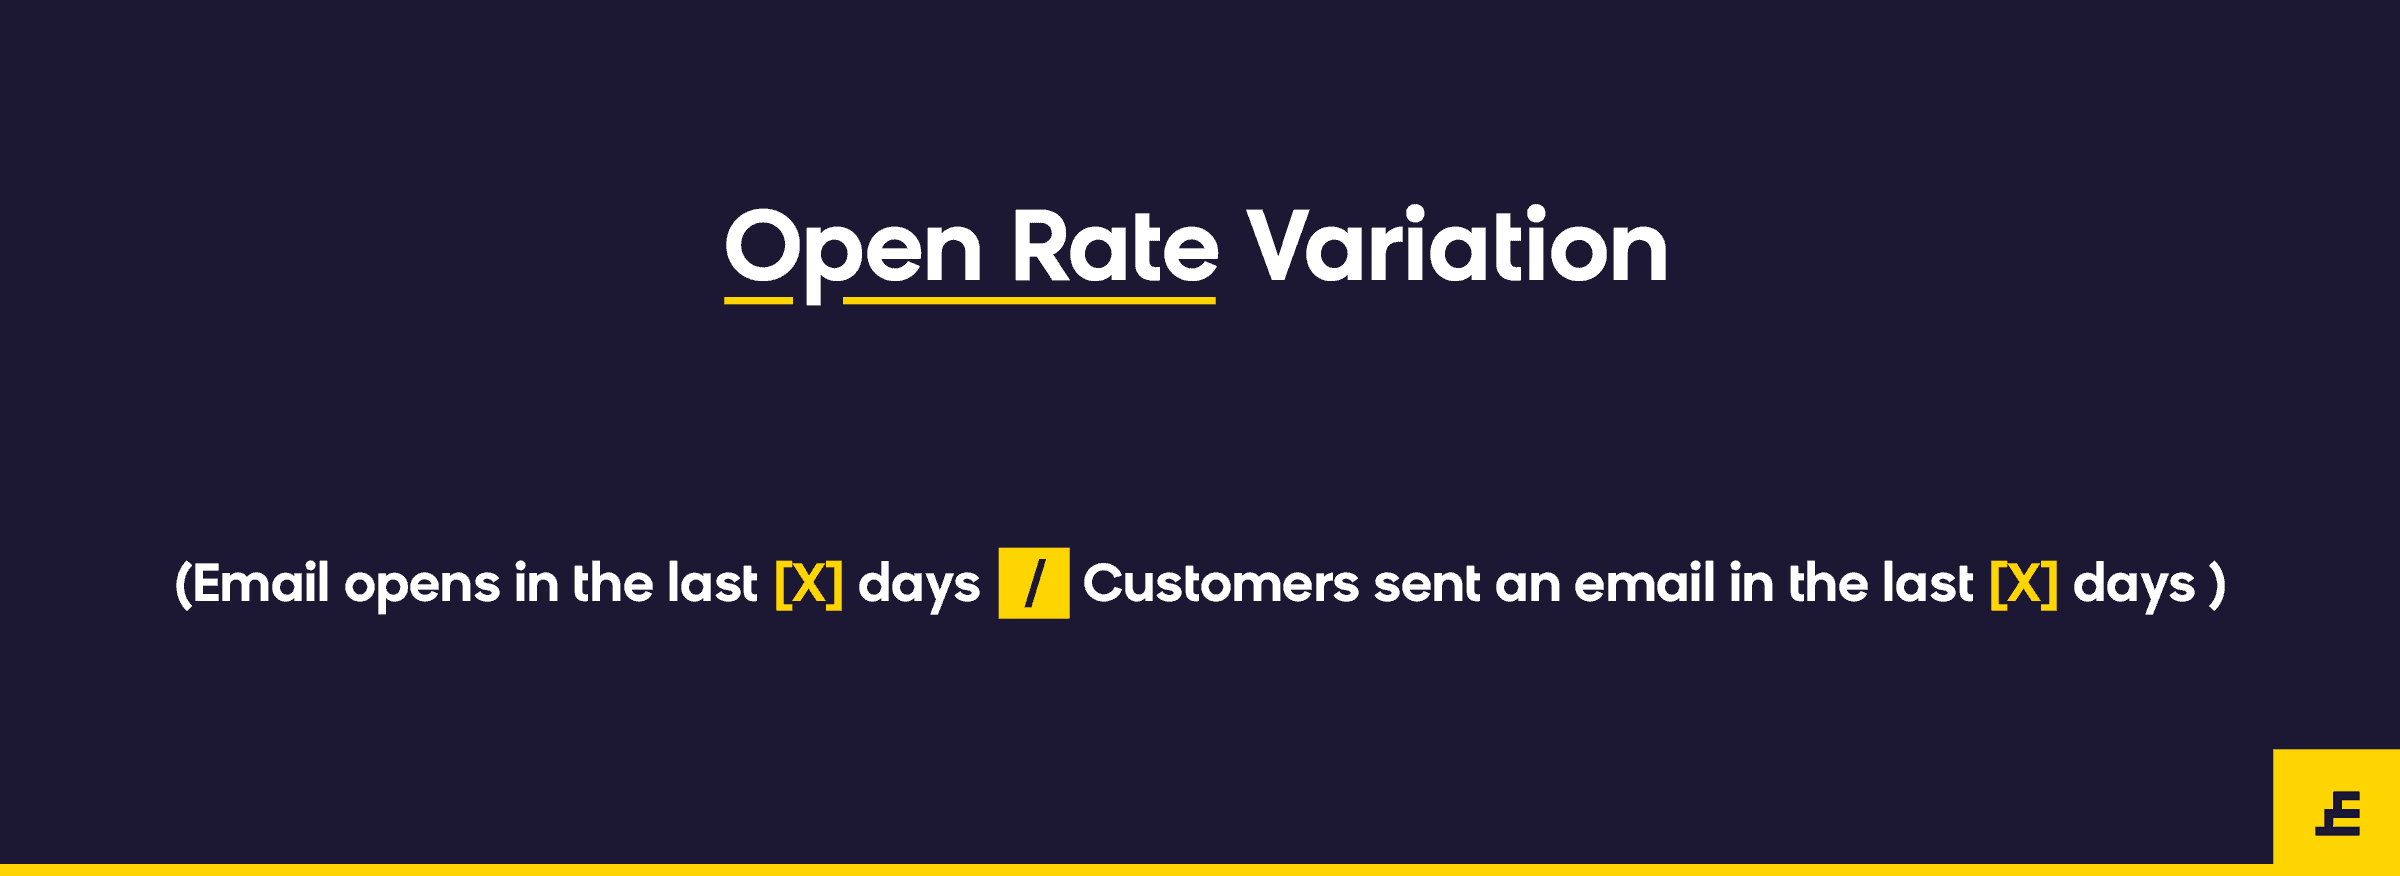 email marketing metric - open rate variation